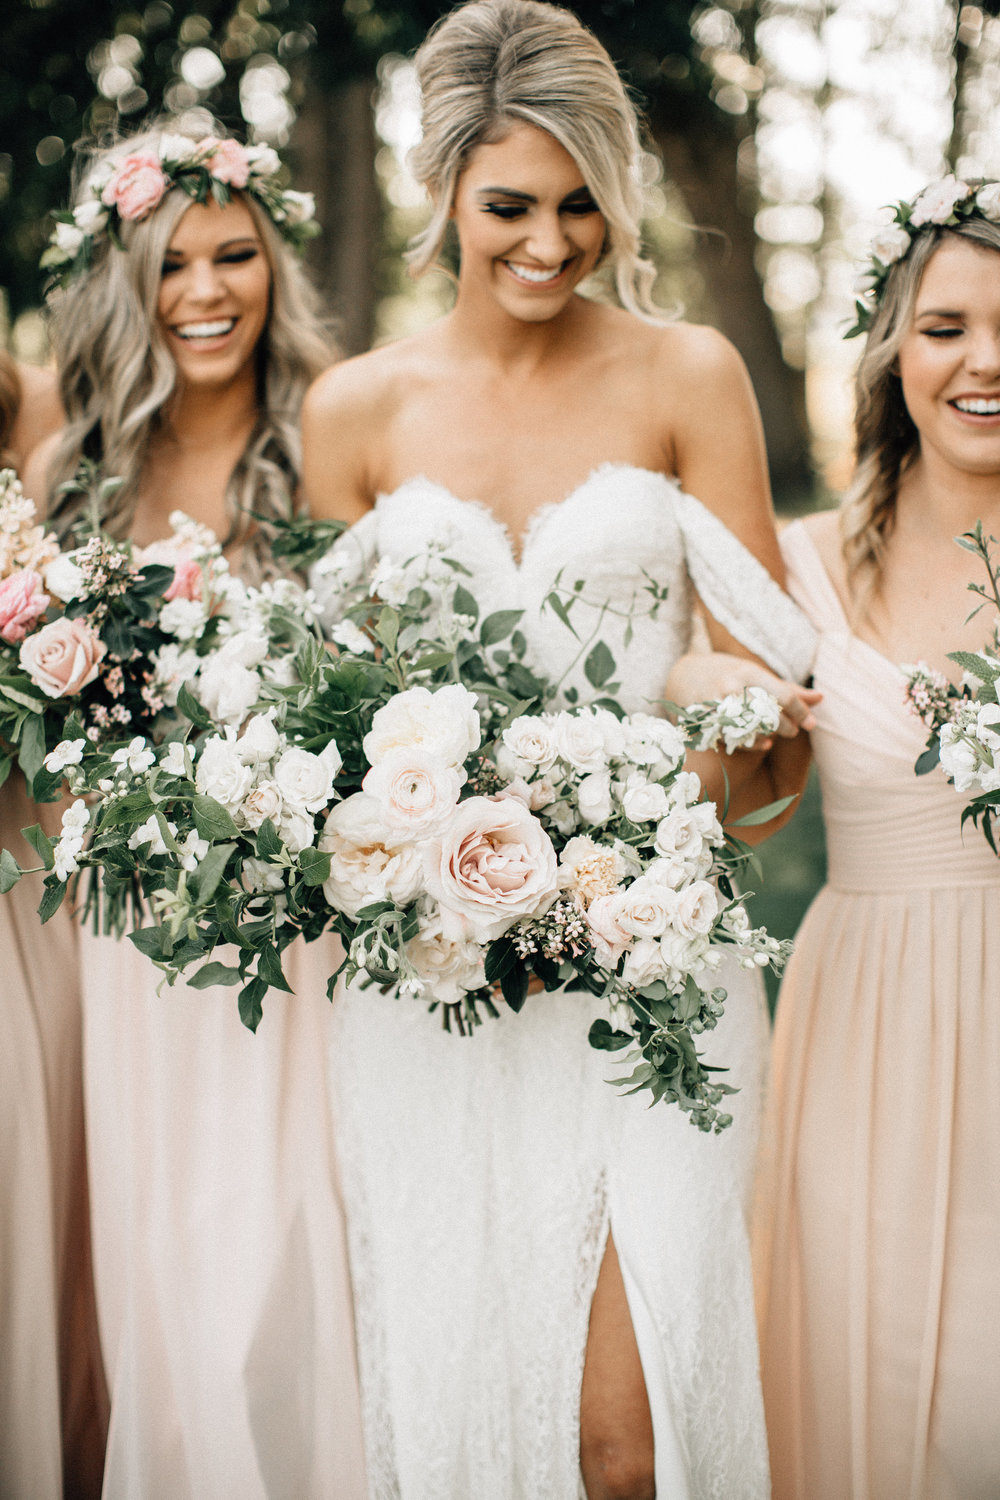 Our 2017 Favorites! - Bethany Small Photography